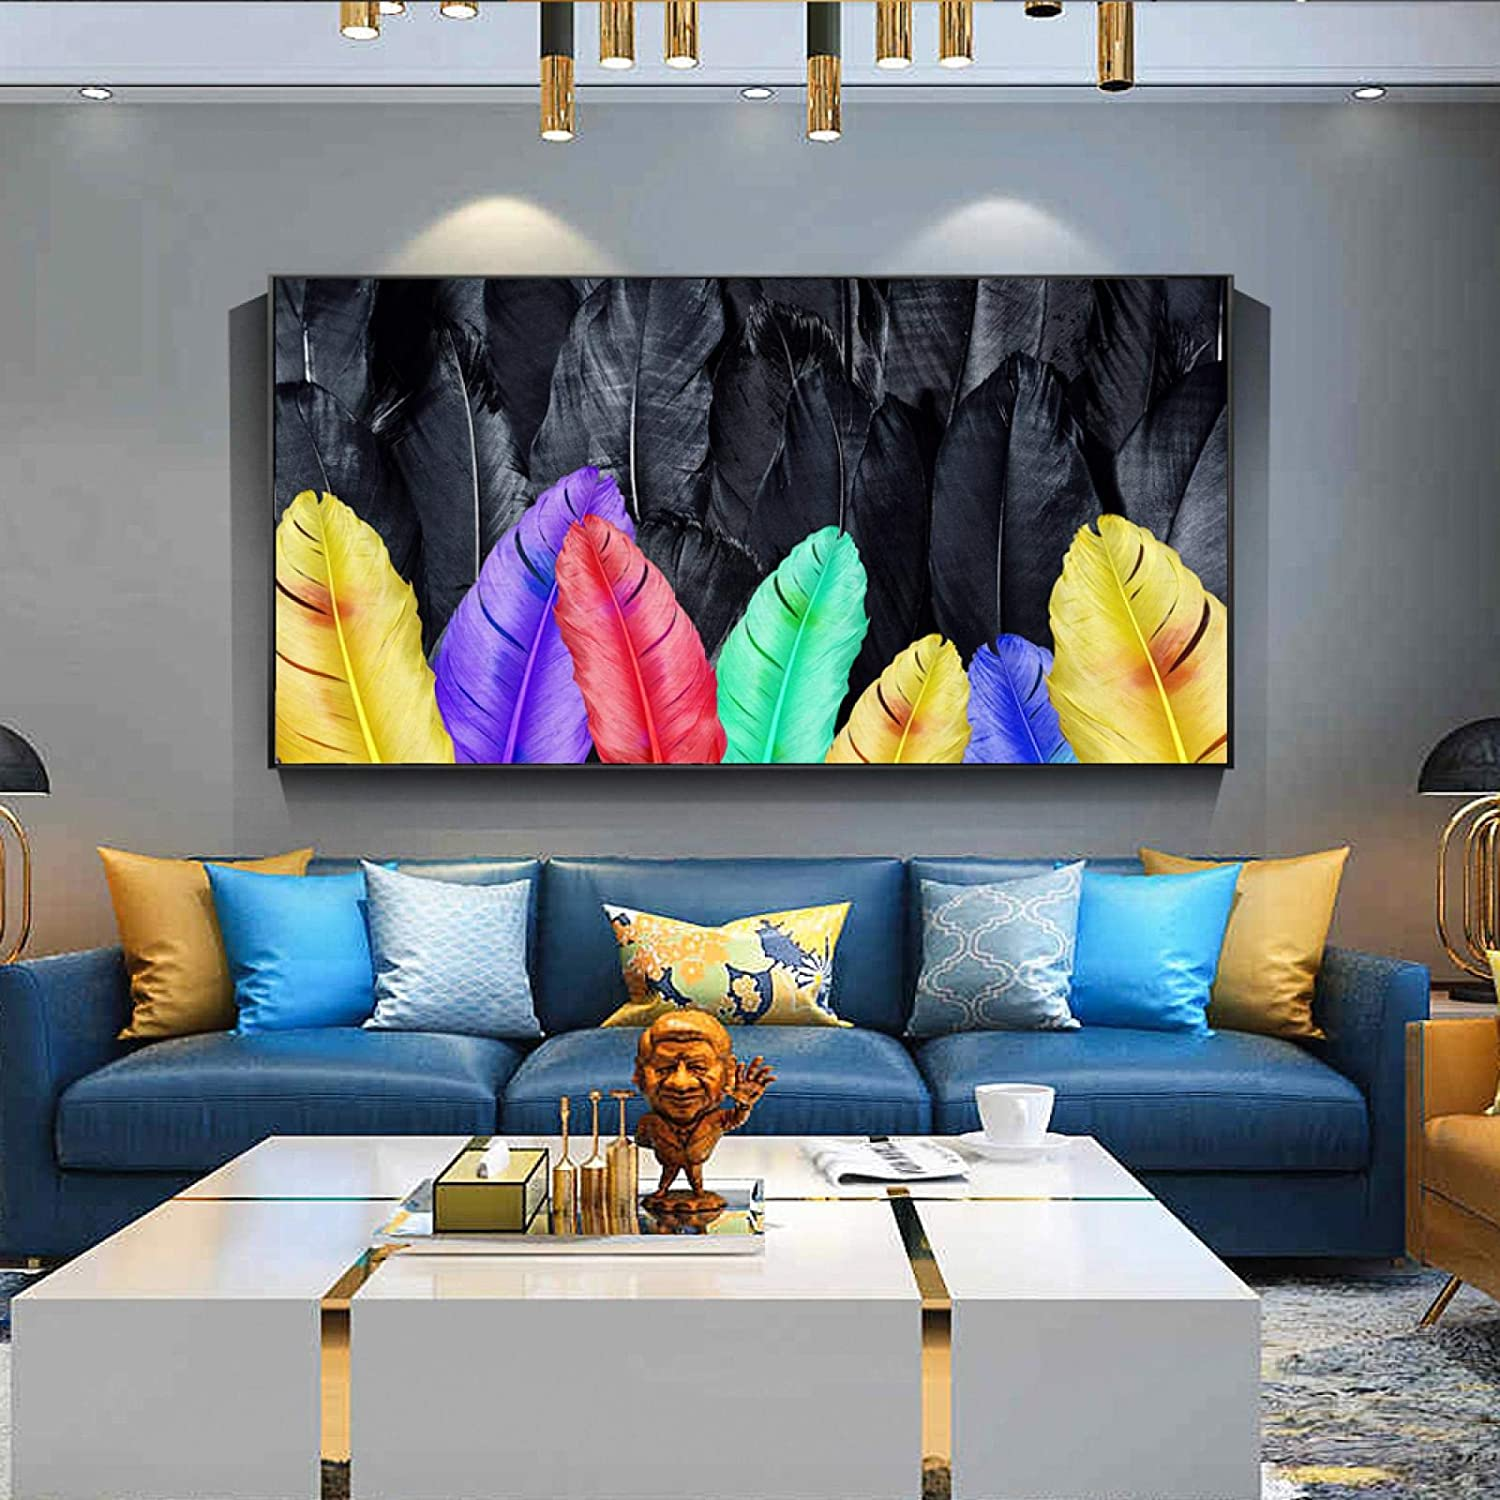 Wall Same day shipping Art Canvas Prints Abstract Outlet ☆ Free Shipping Colorful Feathers Posters Modern